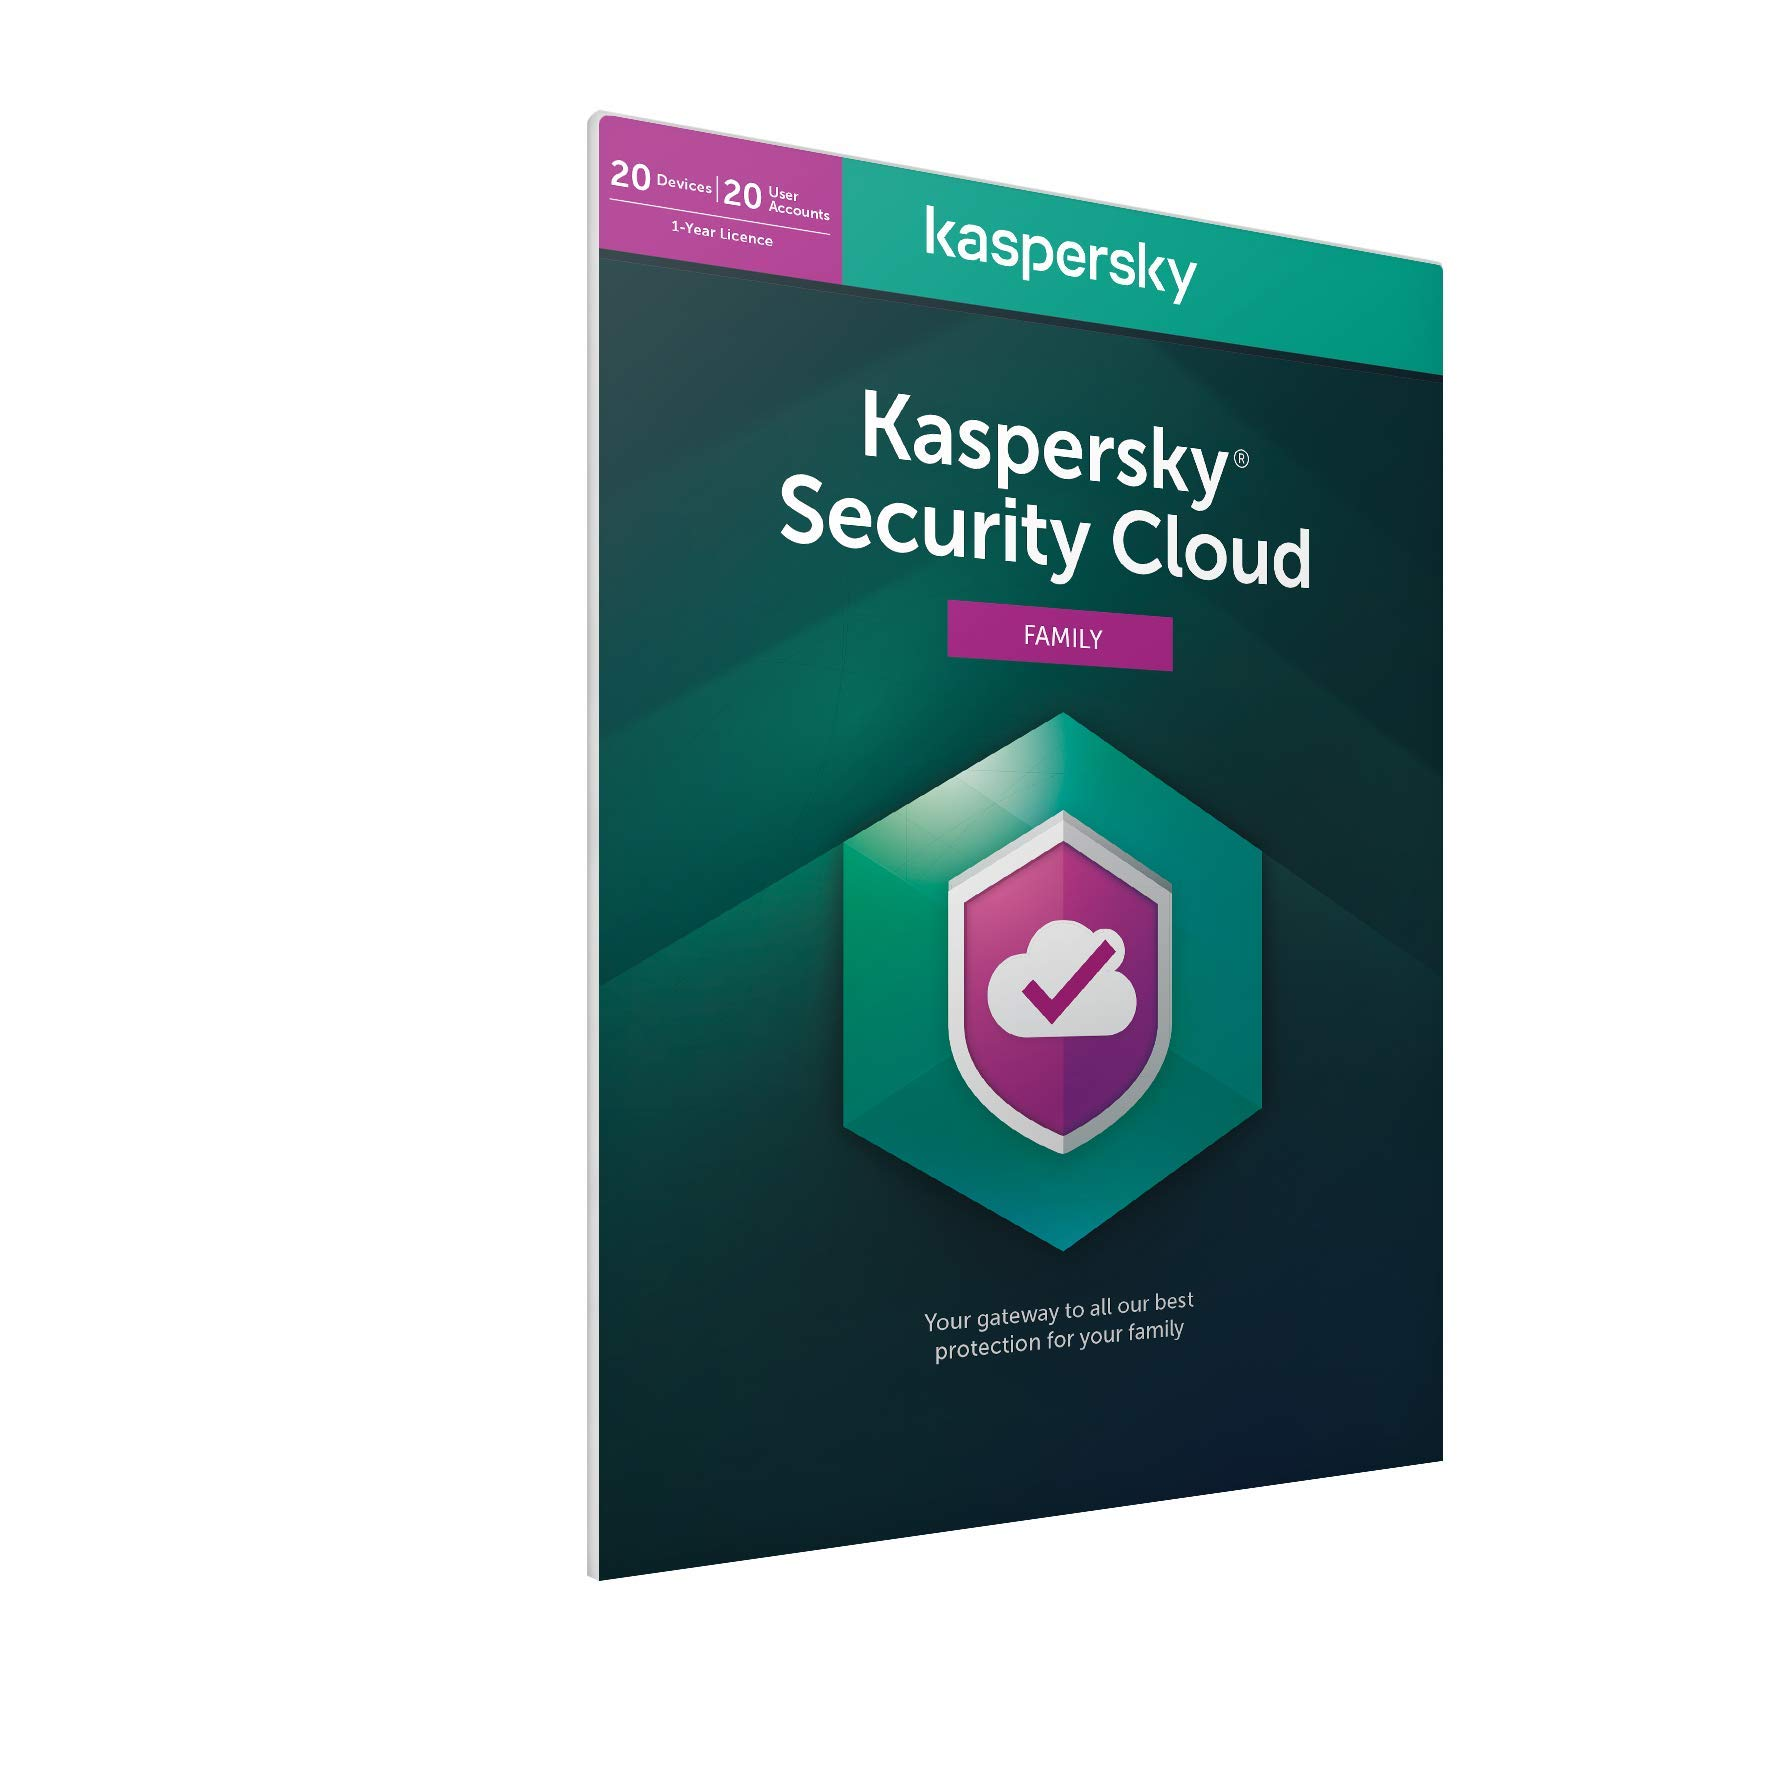 Kaspersky Security Cloud - Family | 20 Devices | 1 Year | Antivirus, Secure VPN and Password Manager Included | PC/Mac/iOS/Android | Activation Code by Post